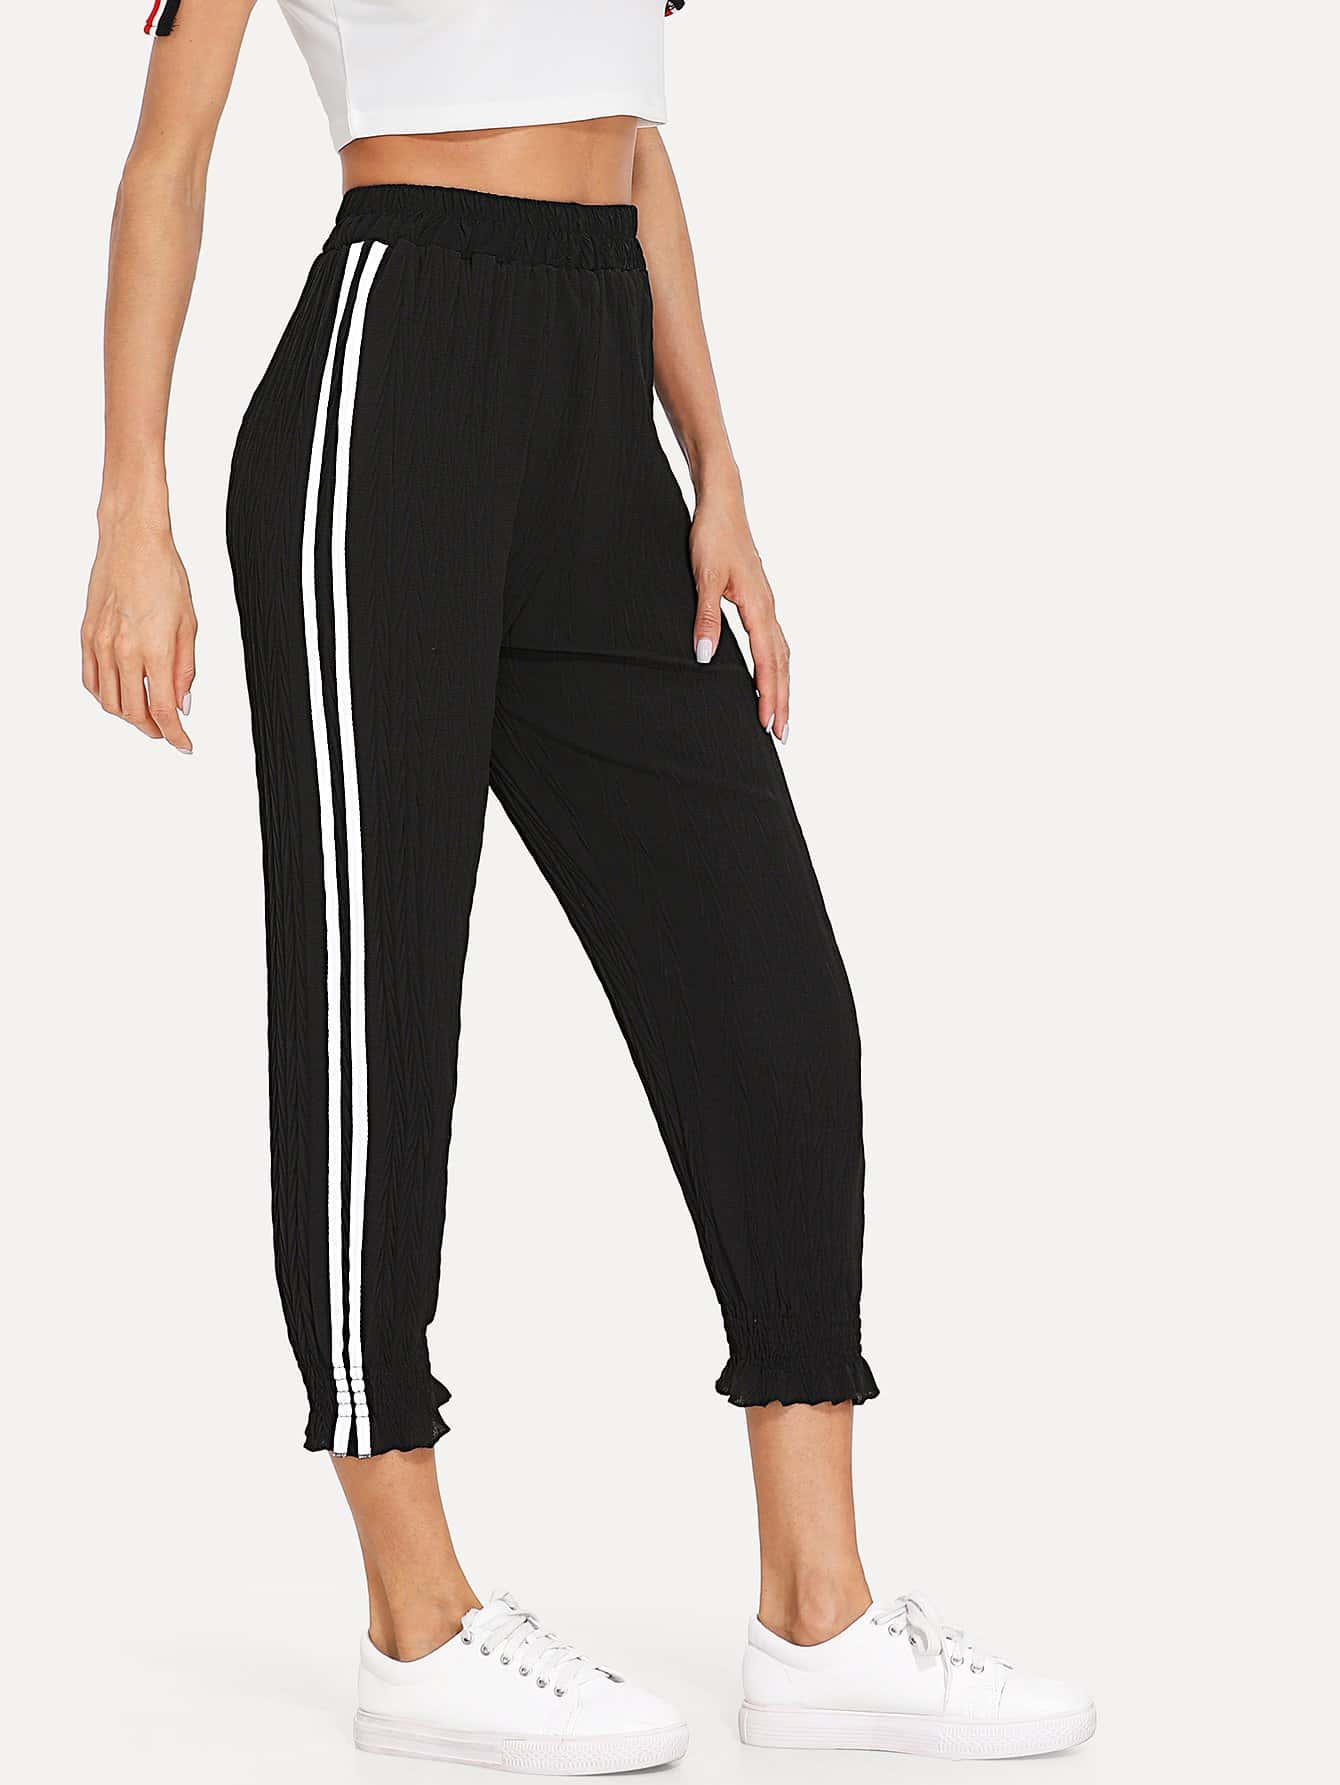 Striped Tape Side Pants striped tape side legging shorts